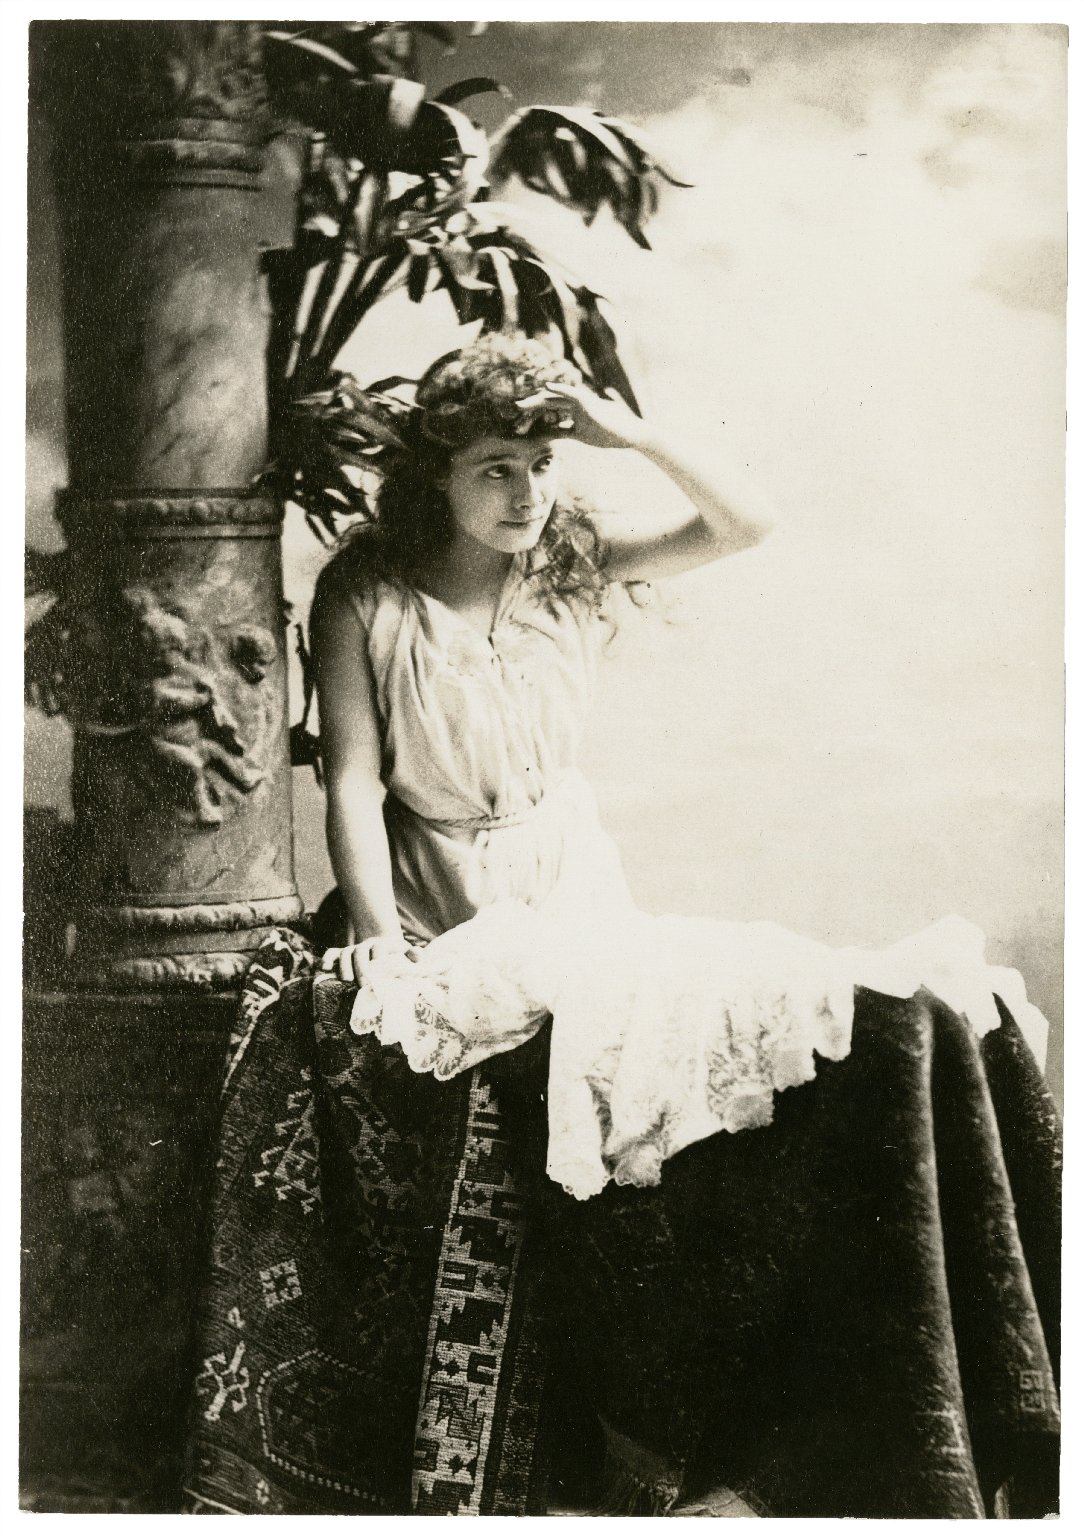 Julia Marlowe as Juliet [in Shakespeare's Romeo and Juliet] 1888 [graphic].